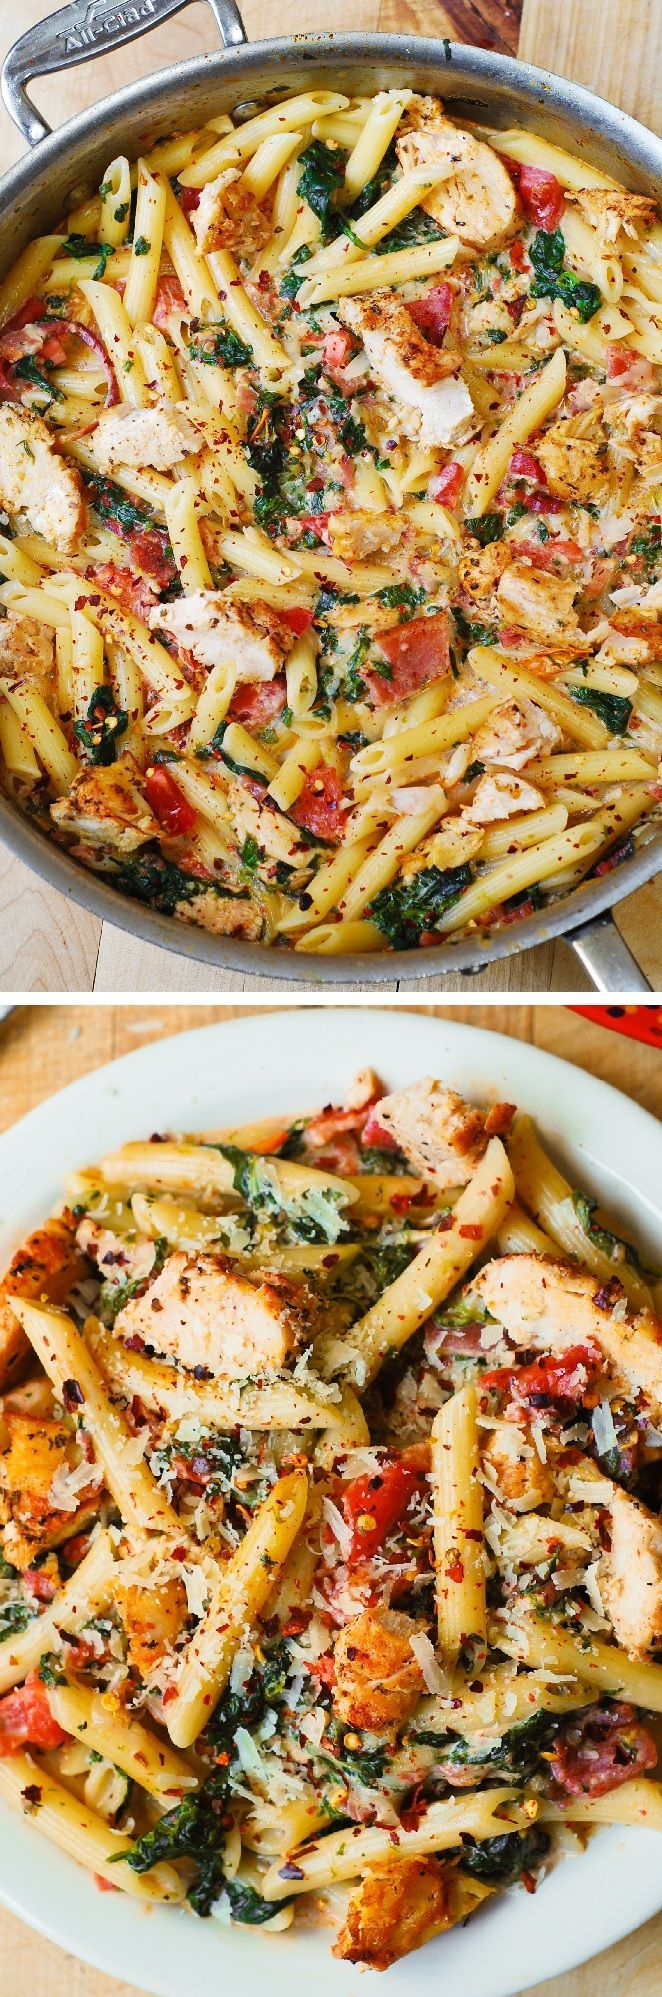 nike free shipping code 2014 Chicken and Bacon Pasta with Spinach and Tomatoes in Garlic Cream Sauce | Recipe | Garlic Cream Sauces, Chicken Bacon Pasta and Spinach